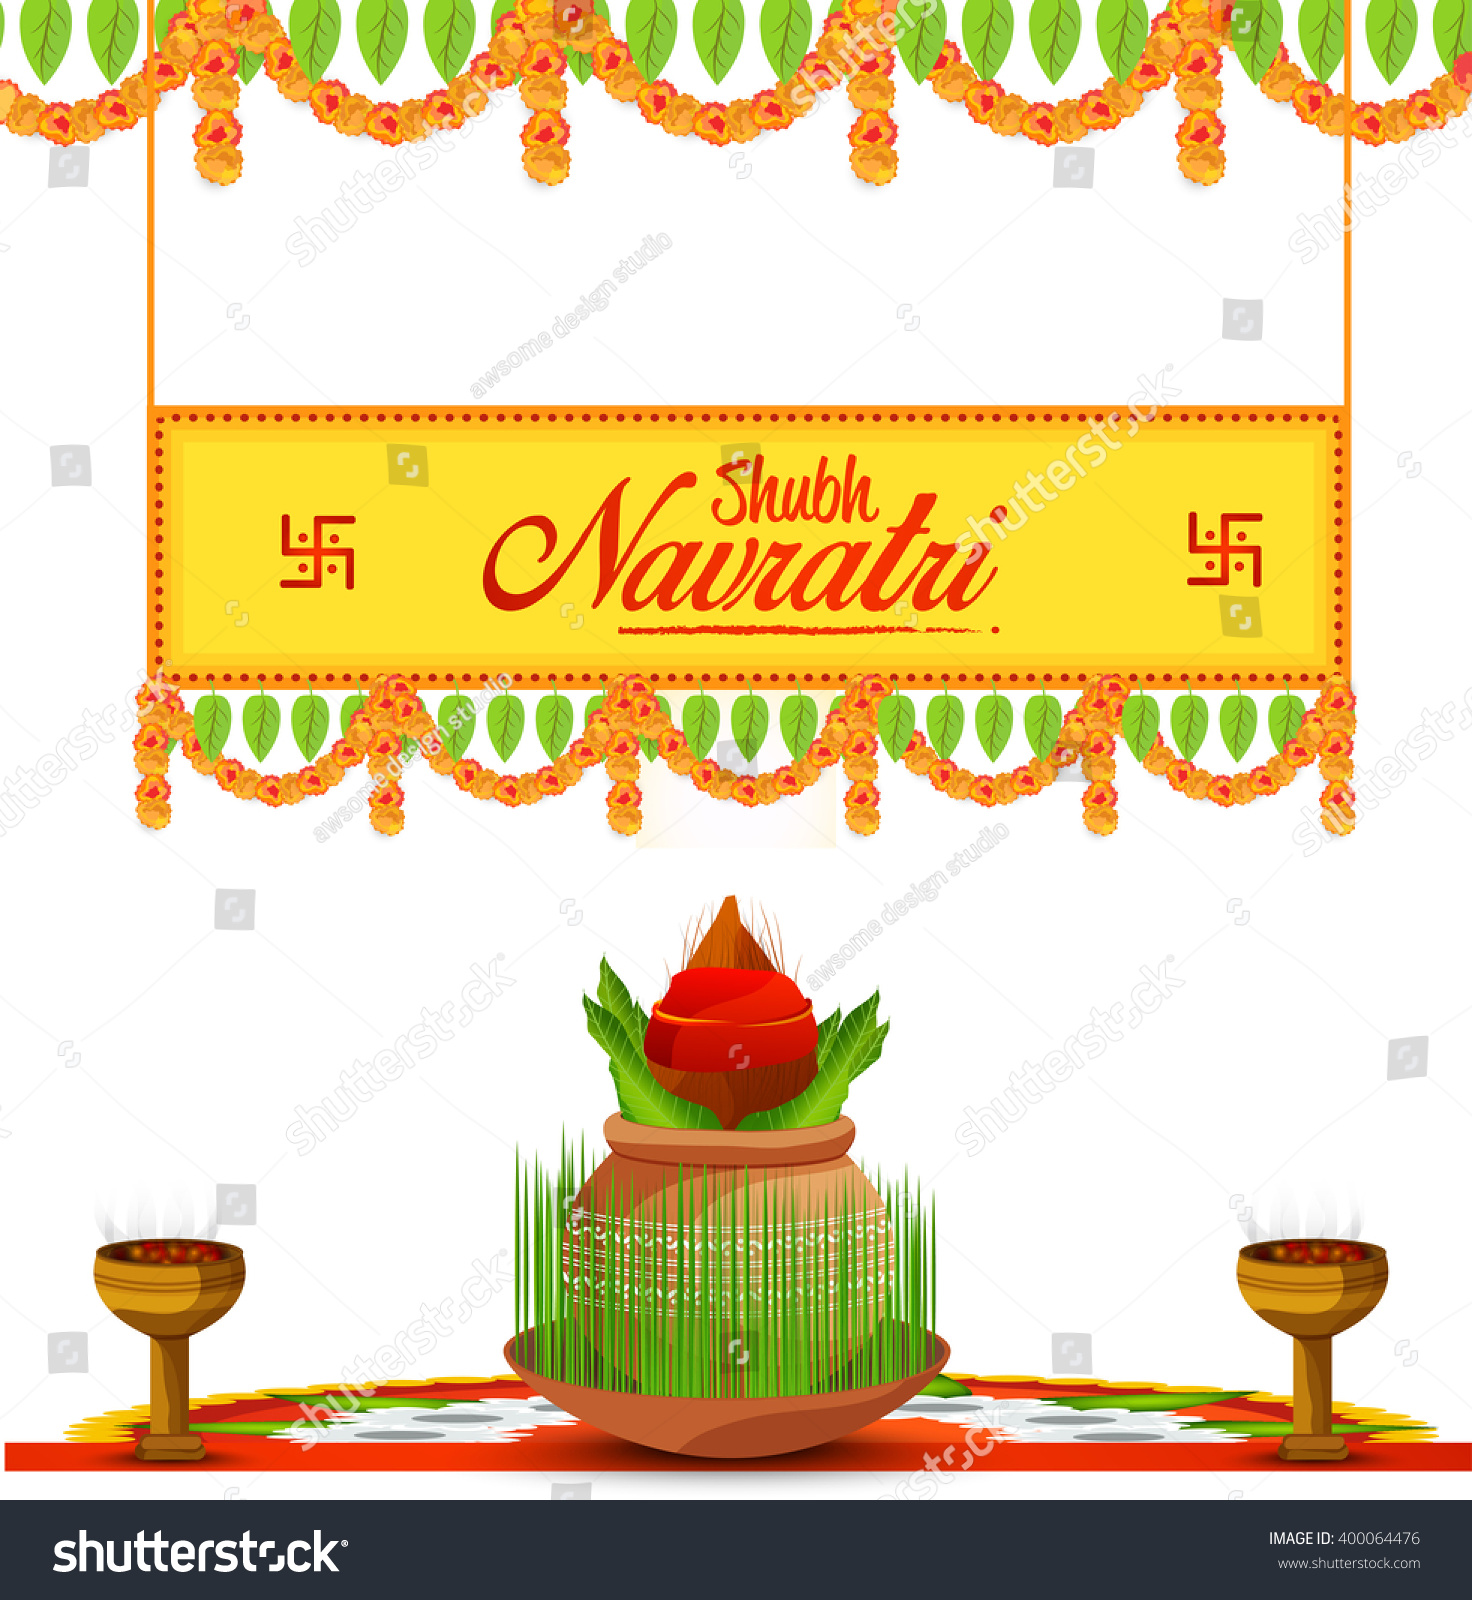 Indian Festival Decoration Vector Illustration Indian Festival Navratri Celebration Stock